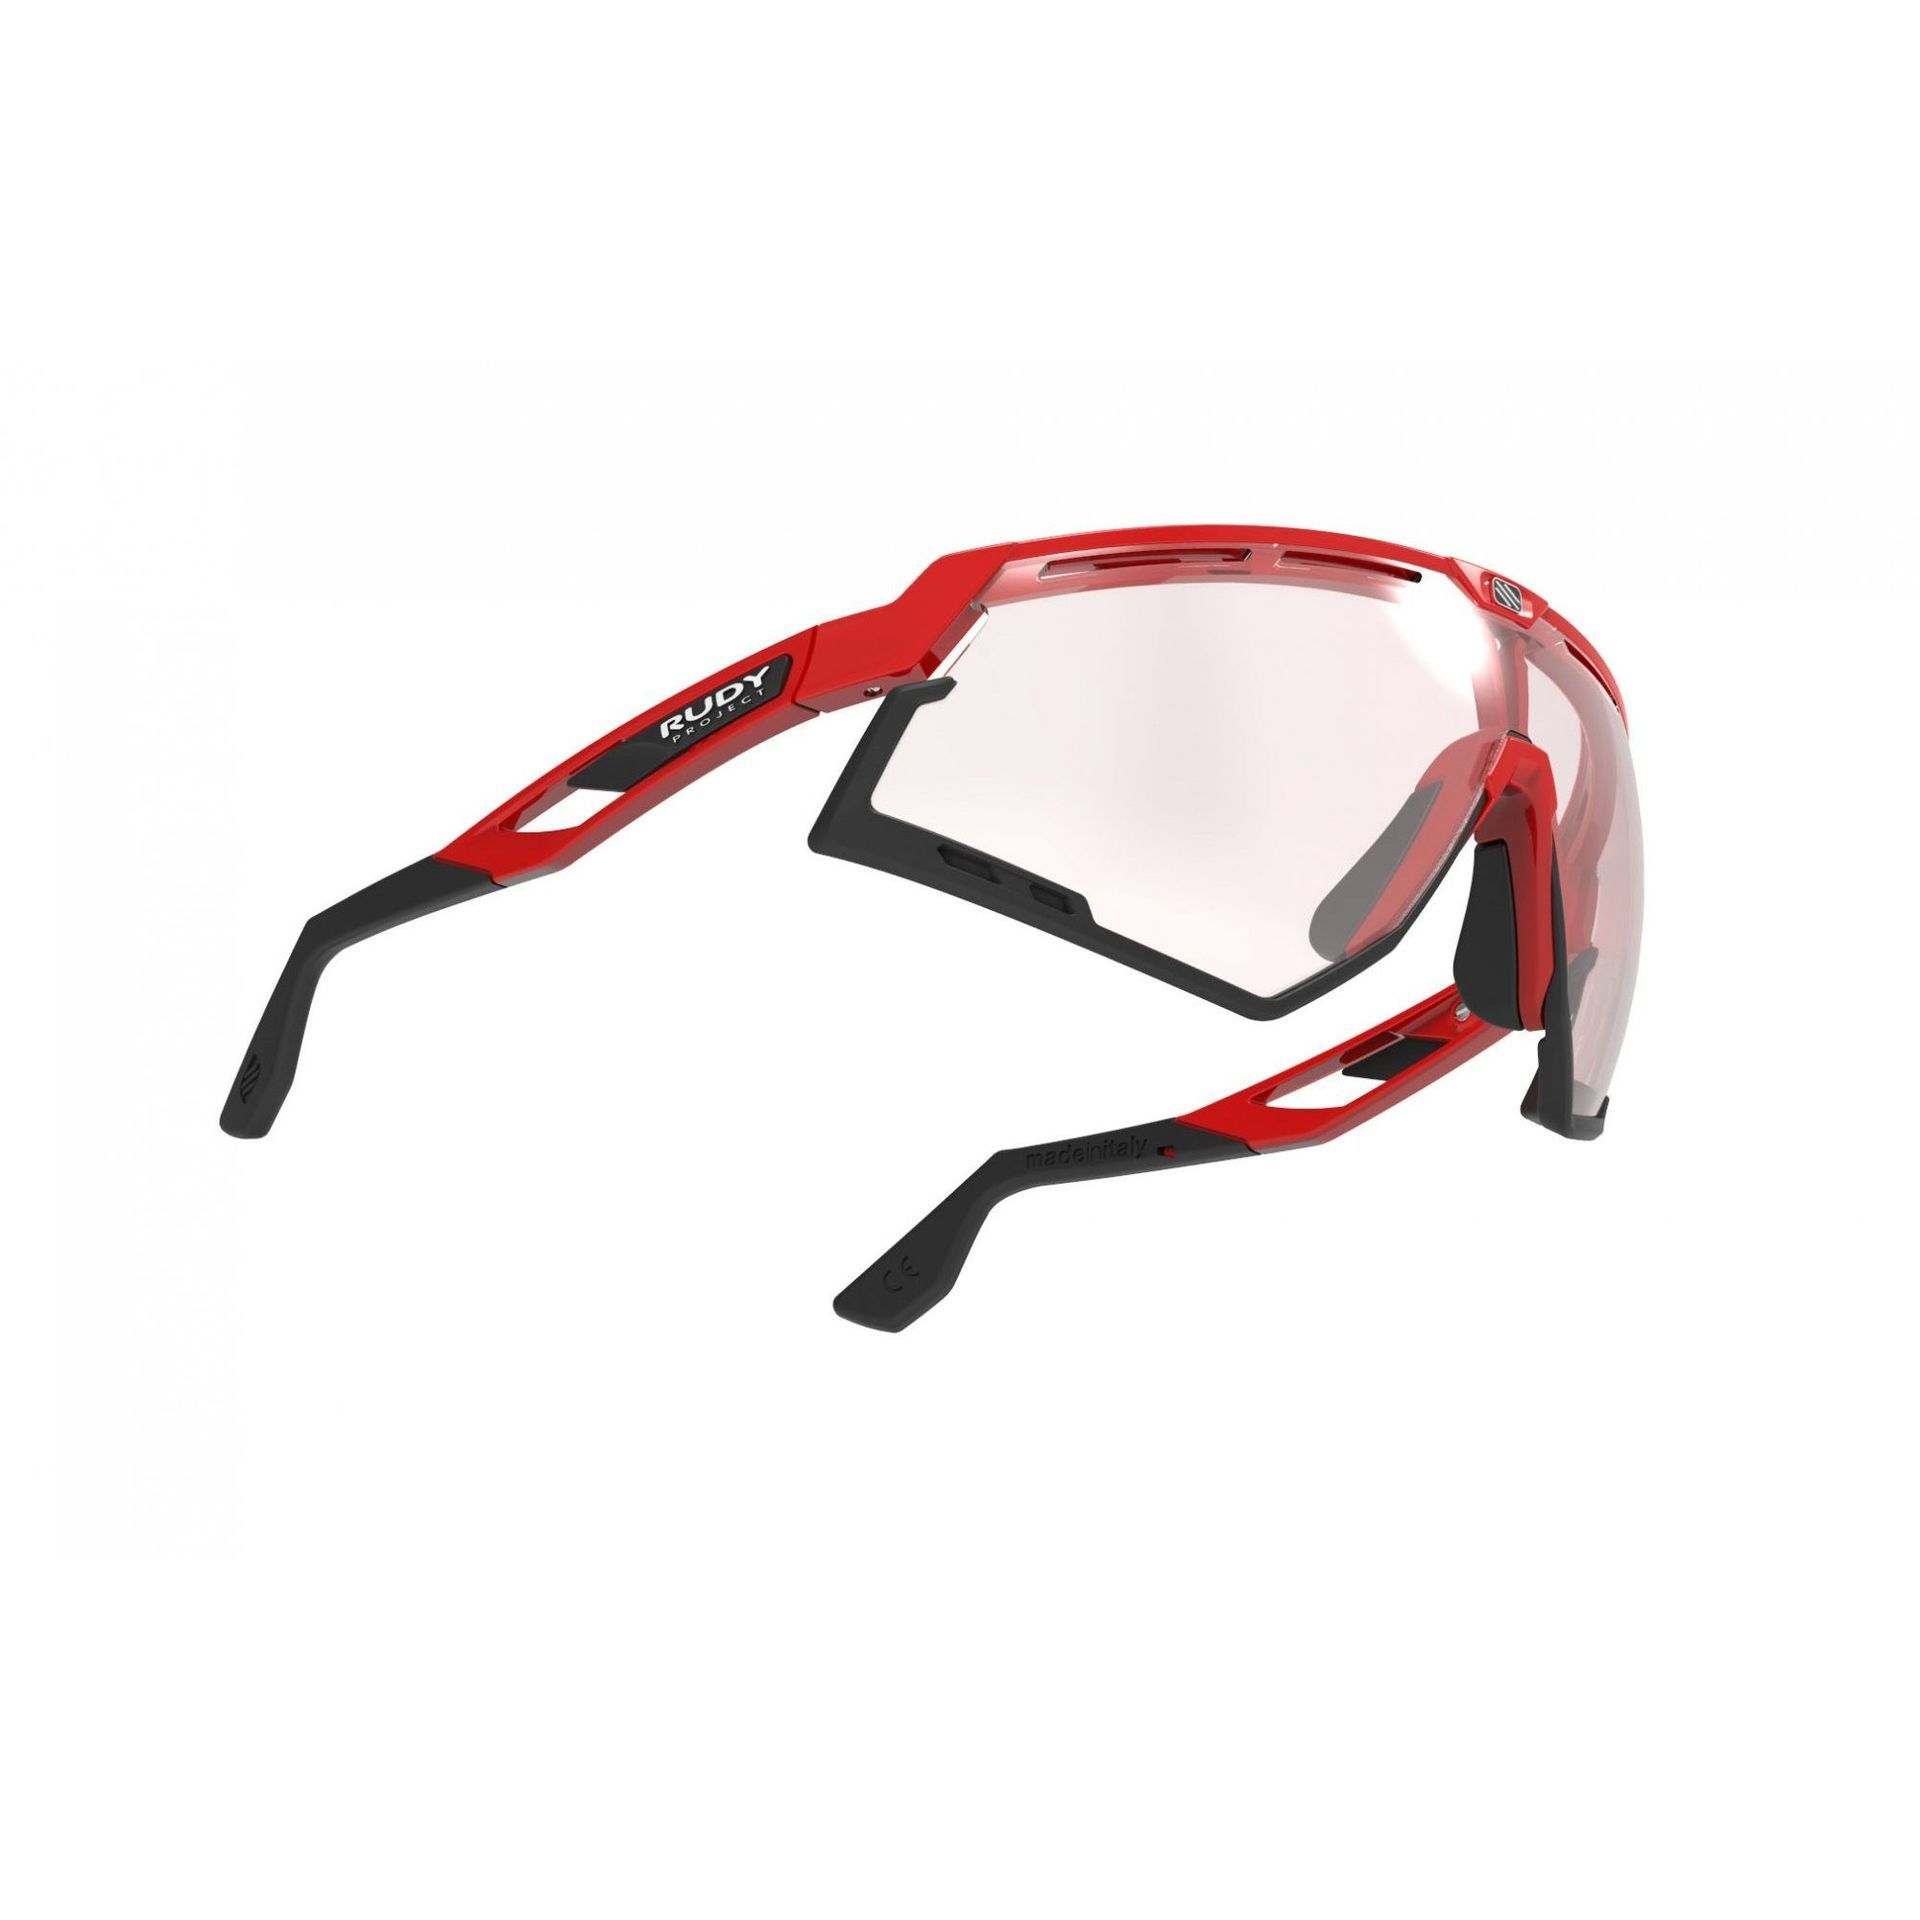 OKULARY RUDY PROJECT DEFENDER FIRE RED BLACK + IMPACTX PHOTOCHROMIC 2LASERRED SP528945 3